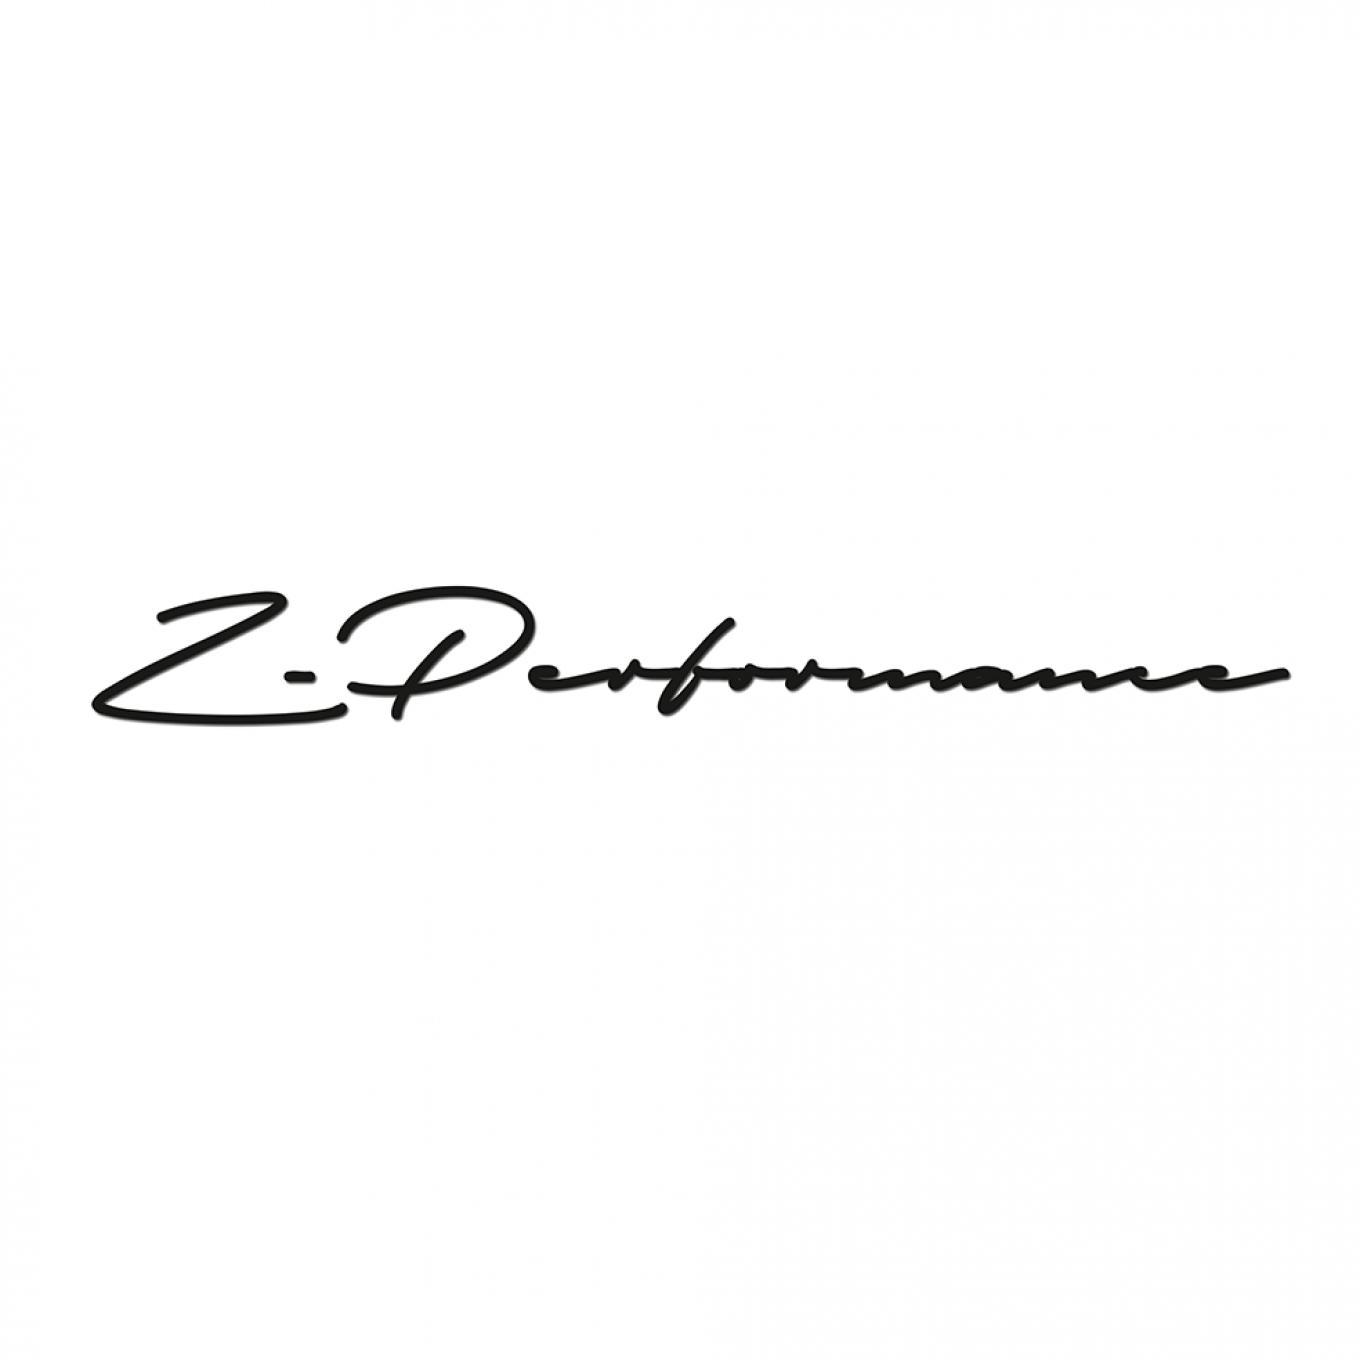 Z-Performance Signature Sticker | 55 cm | Weiss